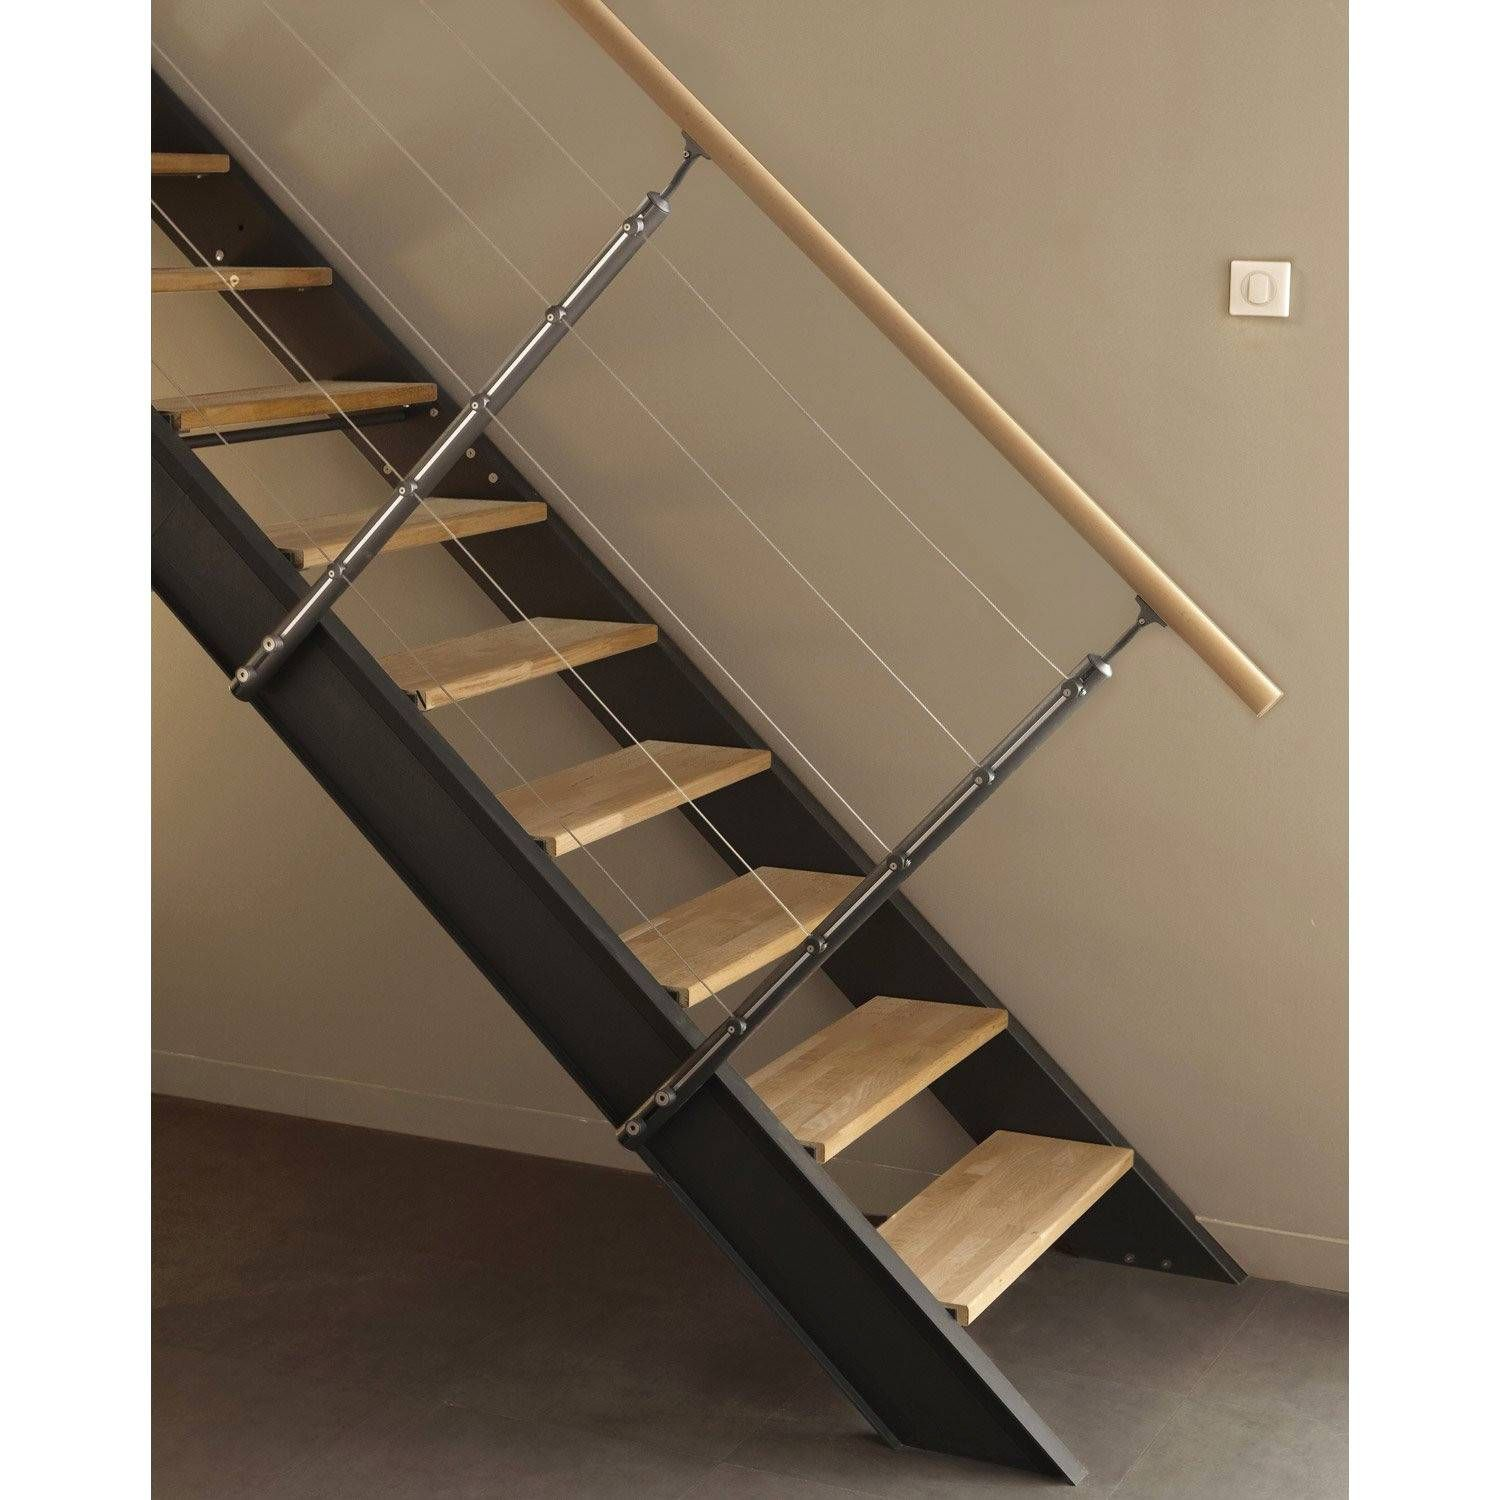 Escalier Exterieur En Kit Leroy Merlin Rampe Corde Escalier Castorama In 2020 Home Decor Decor Stairs